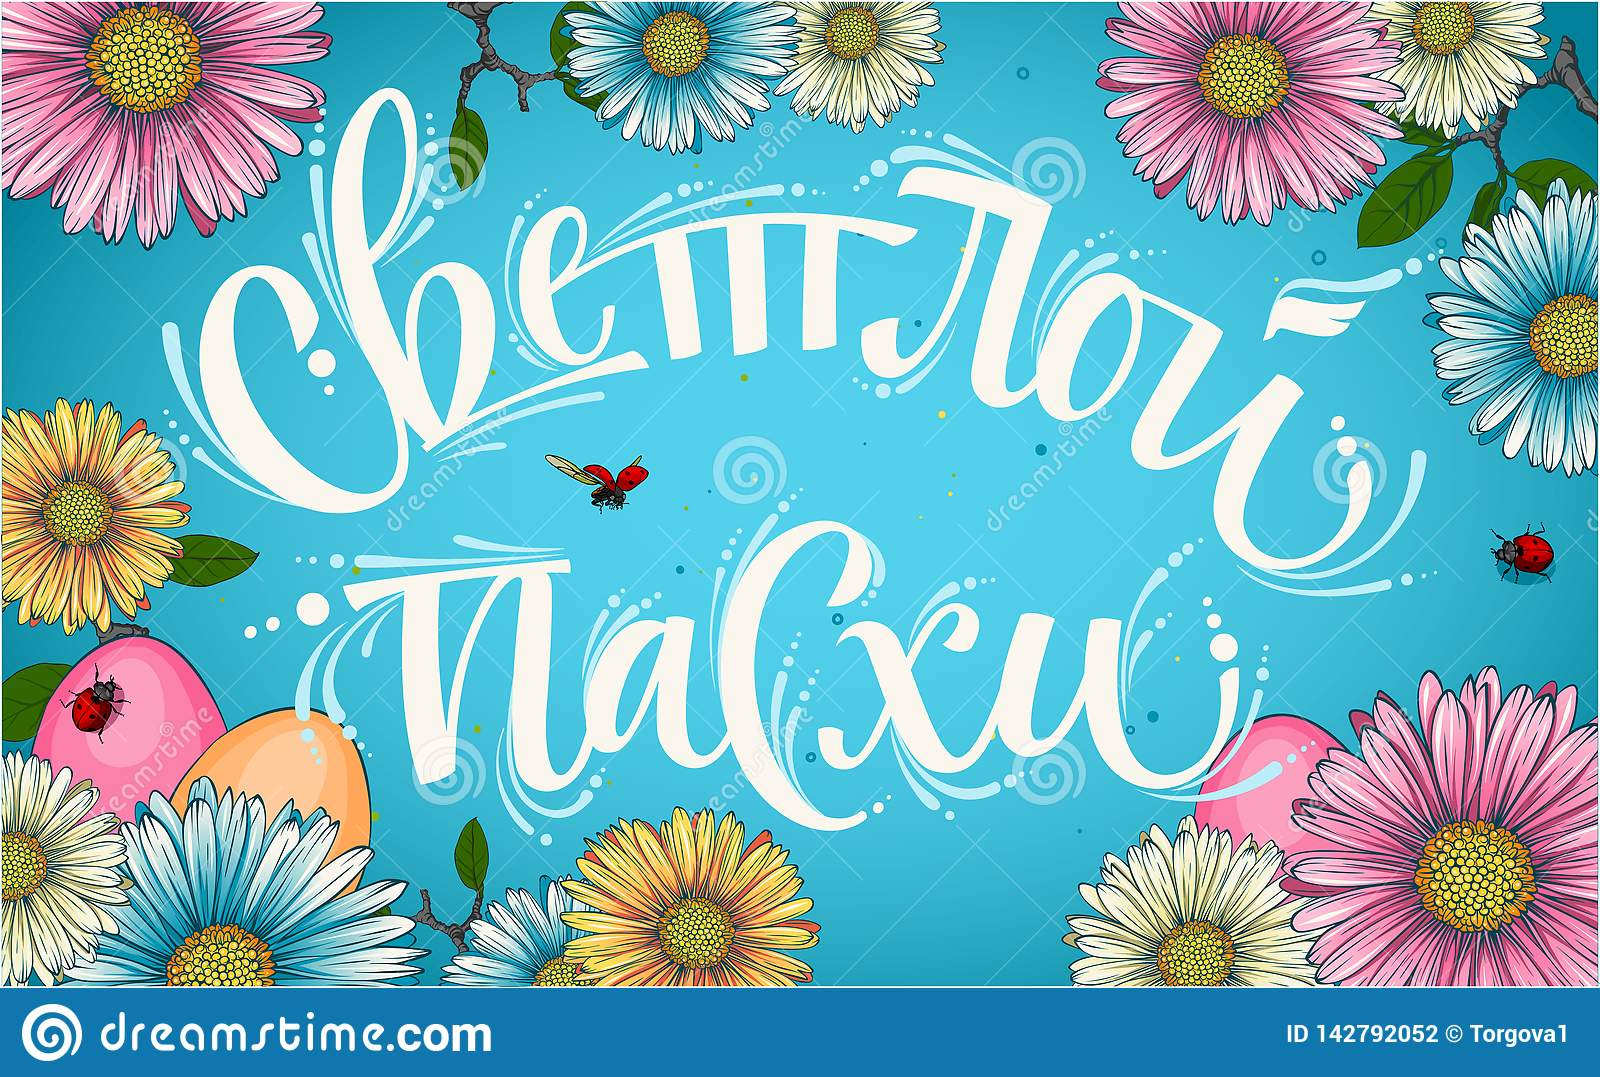 Happy easter cyrillic calligraphy with floral elements